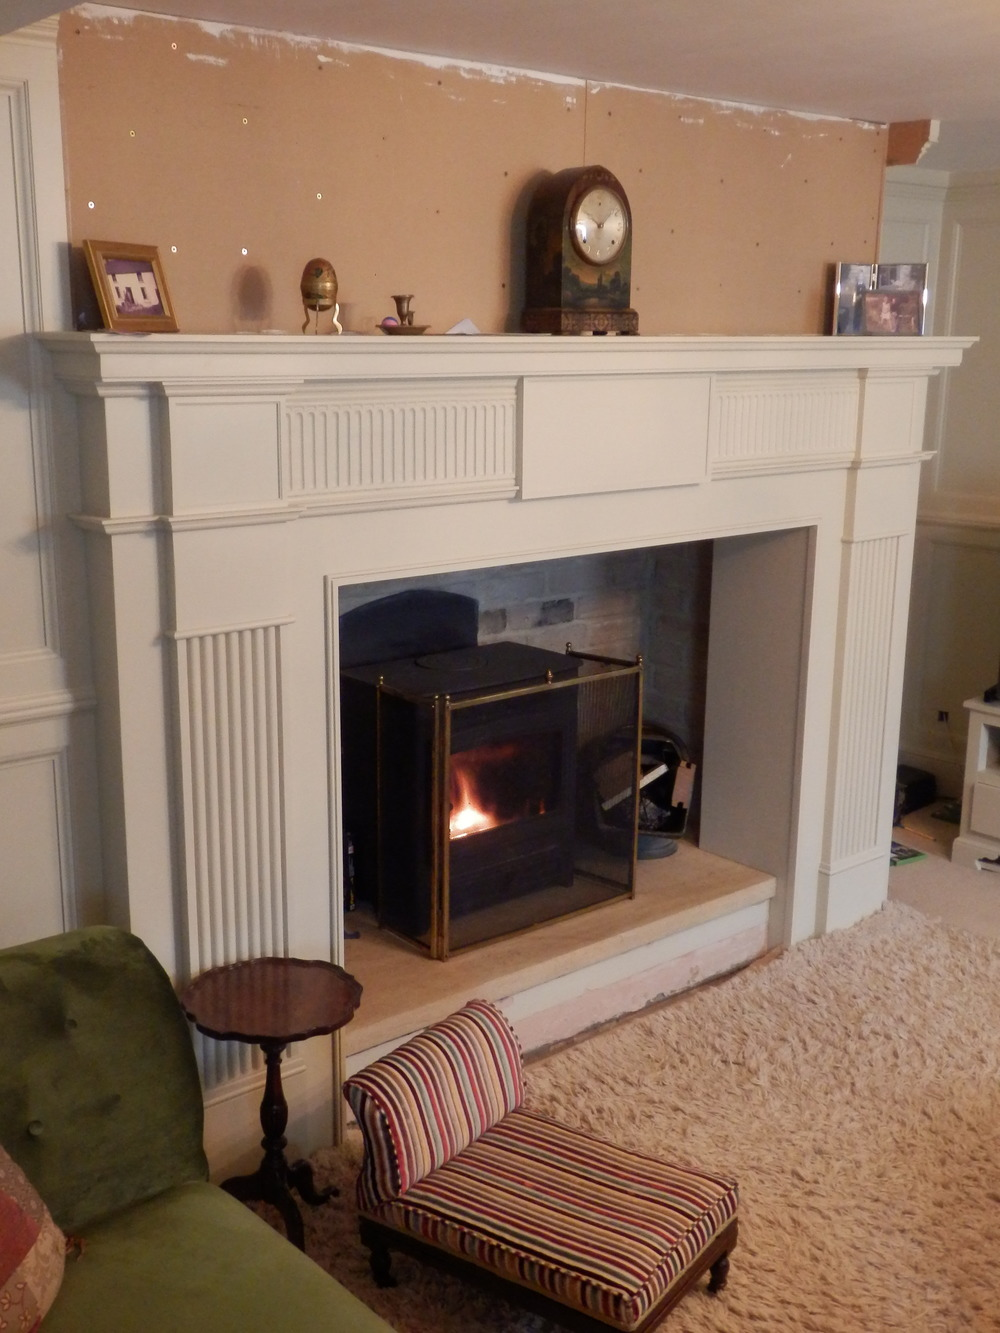 Regency style fireplace